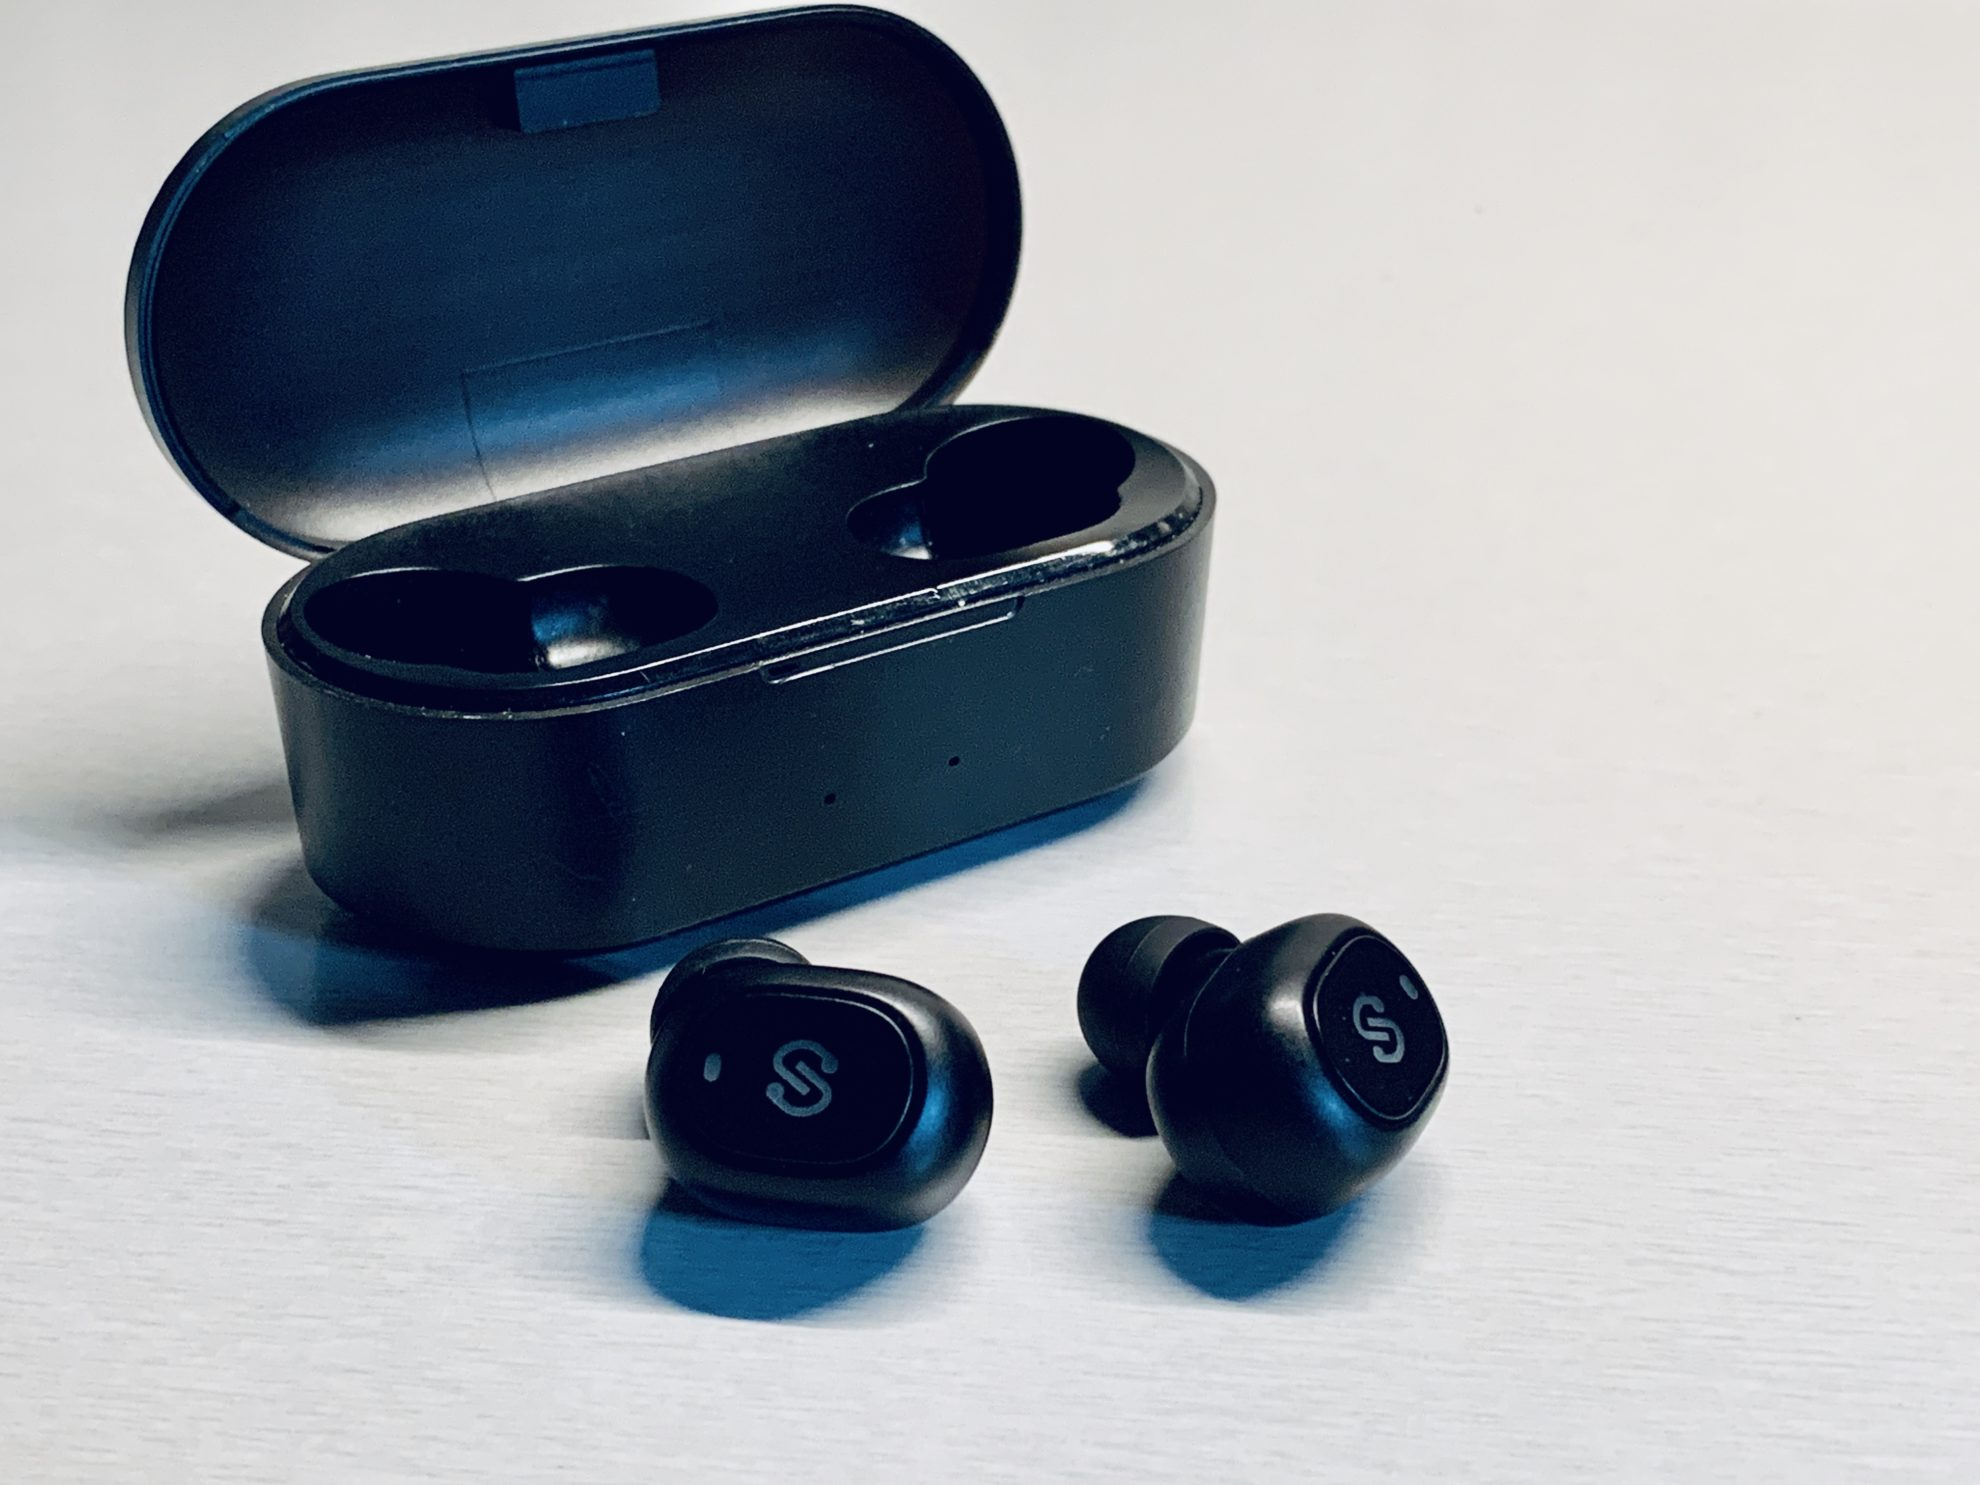 SoundPEATS Wireless Headphones